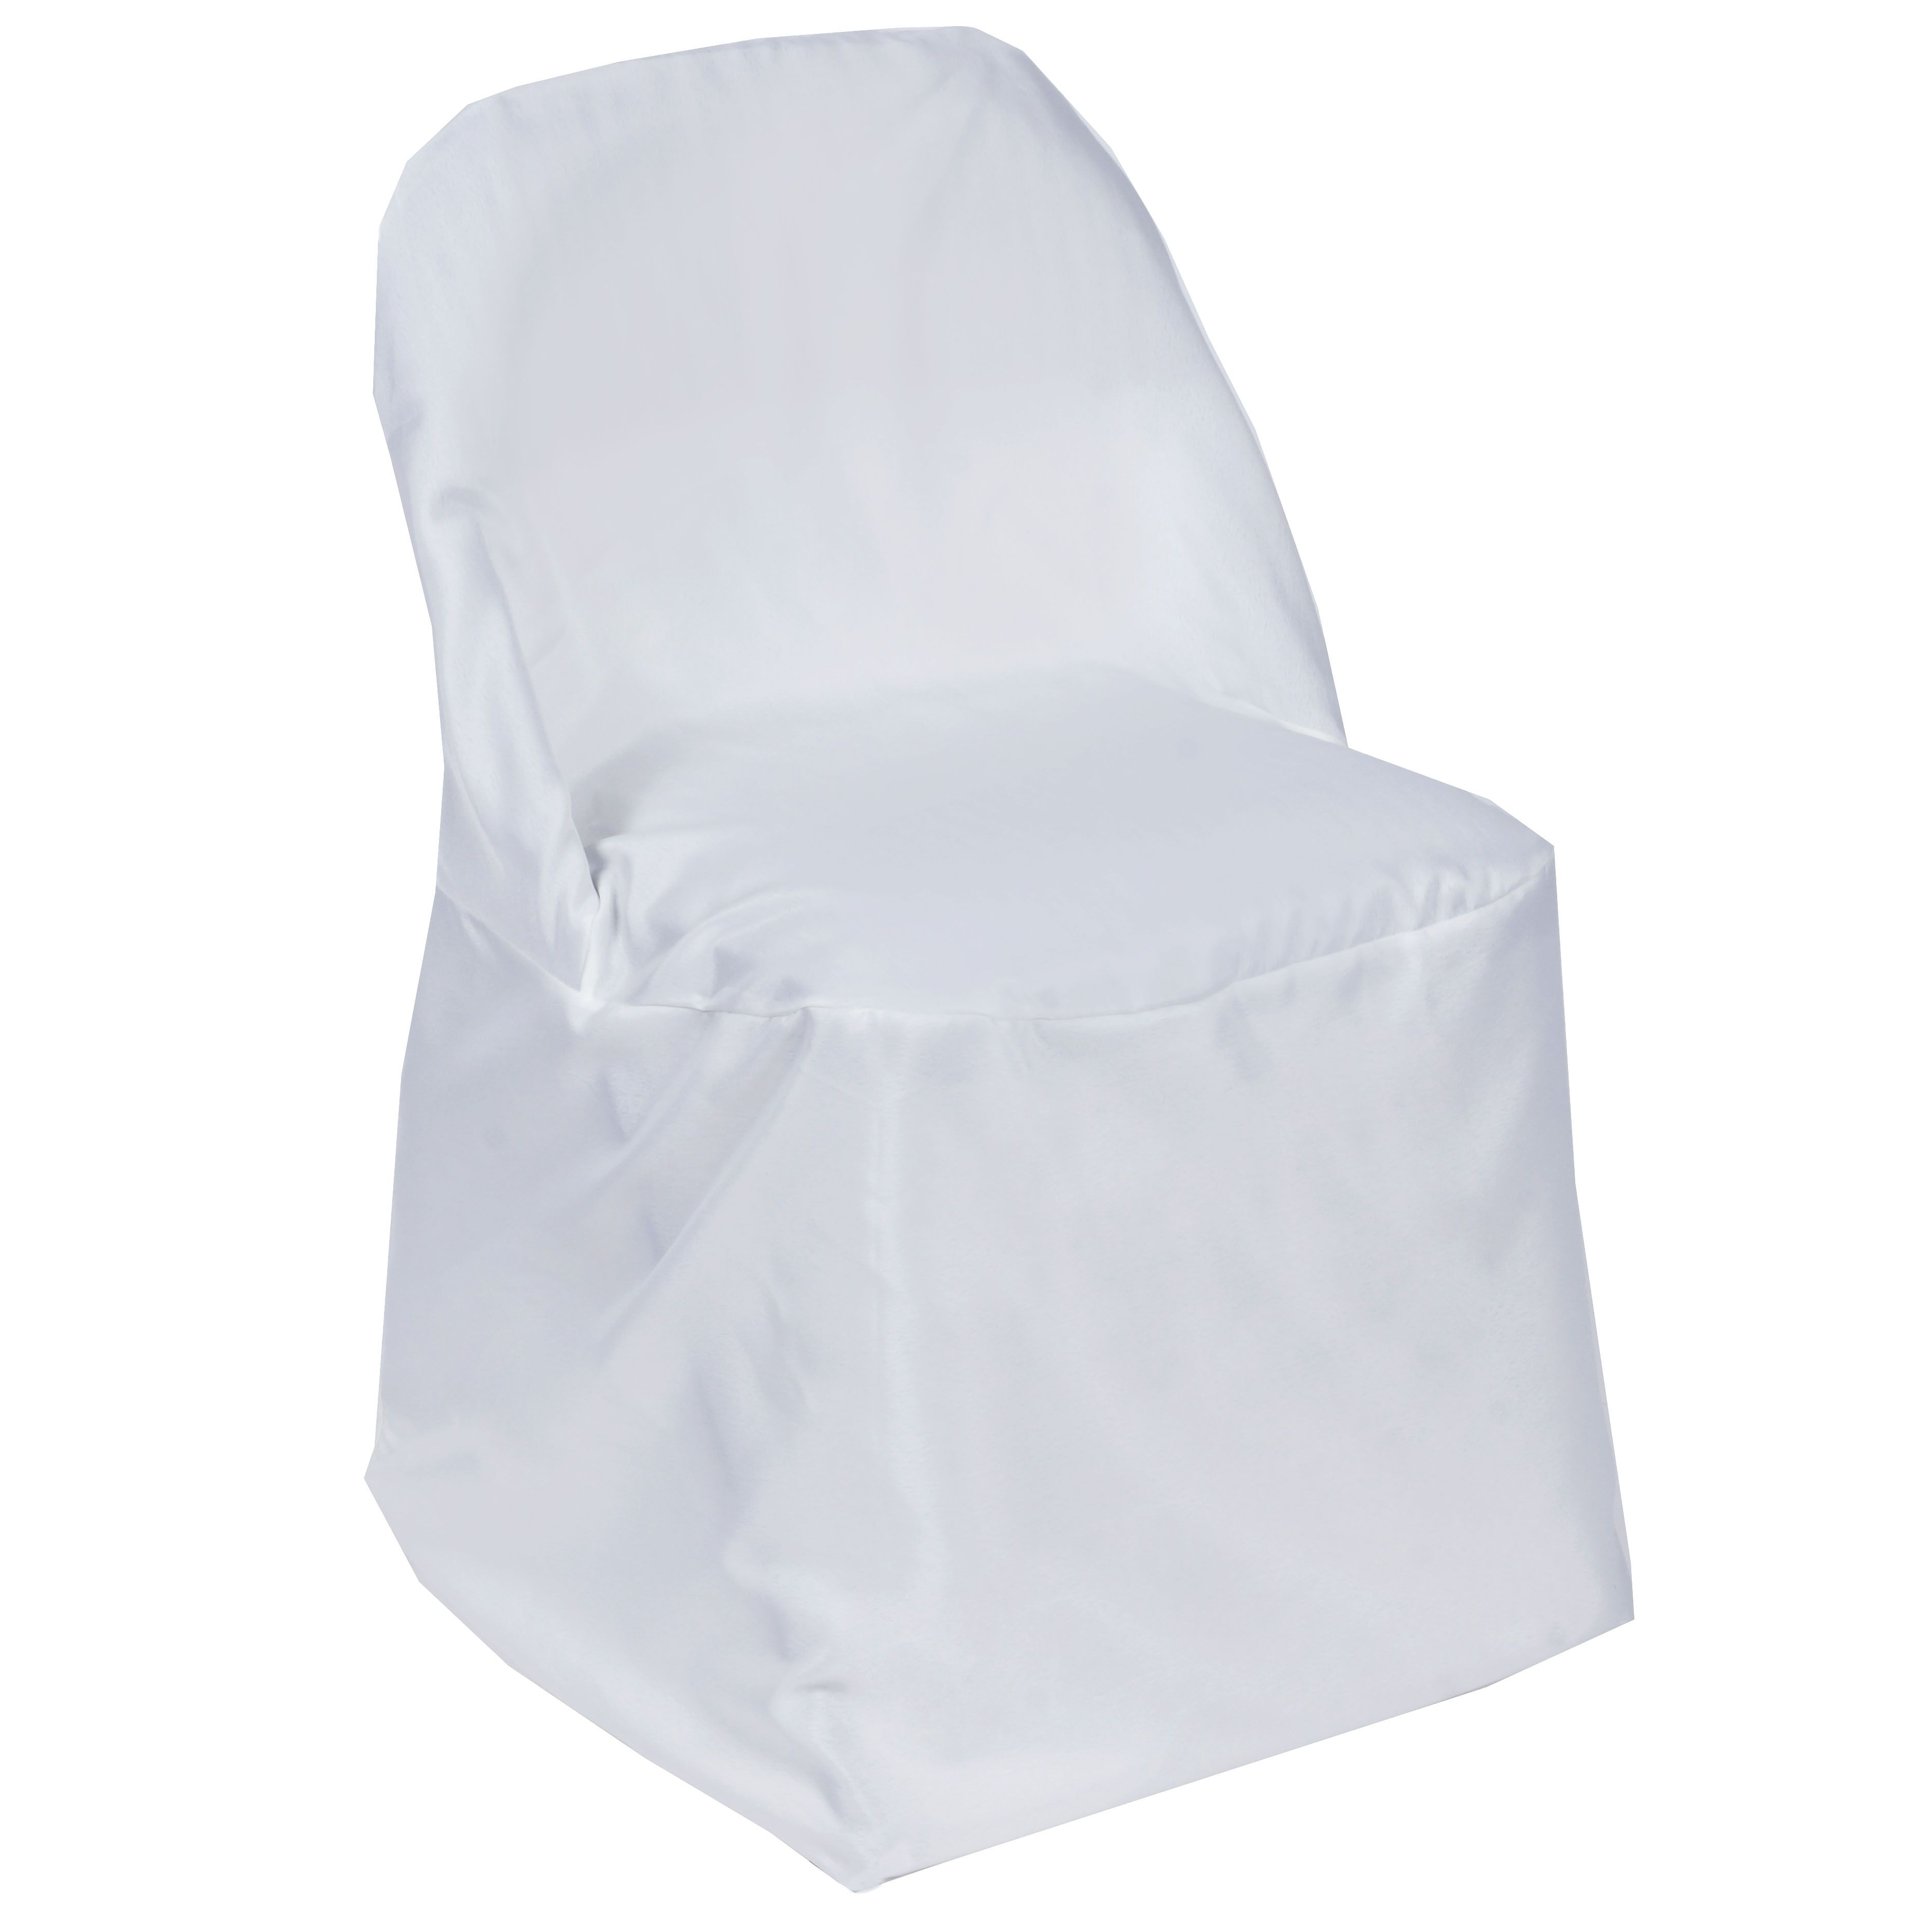 Round Folding Chair Covers